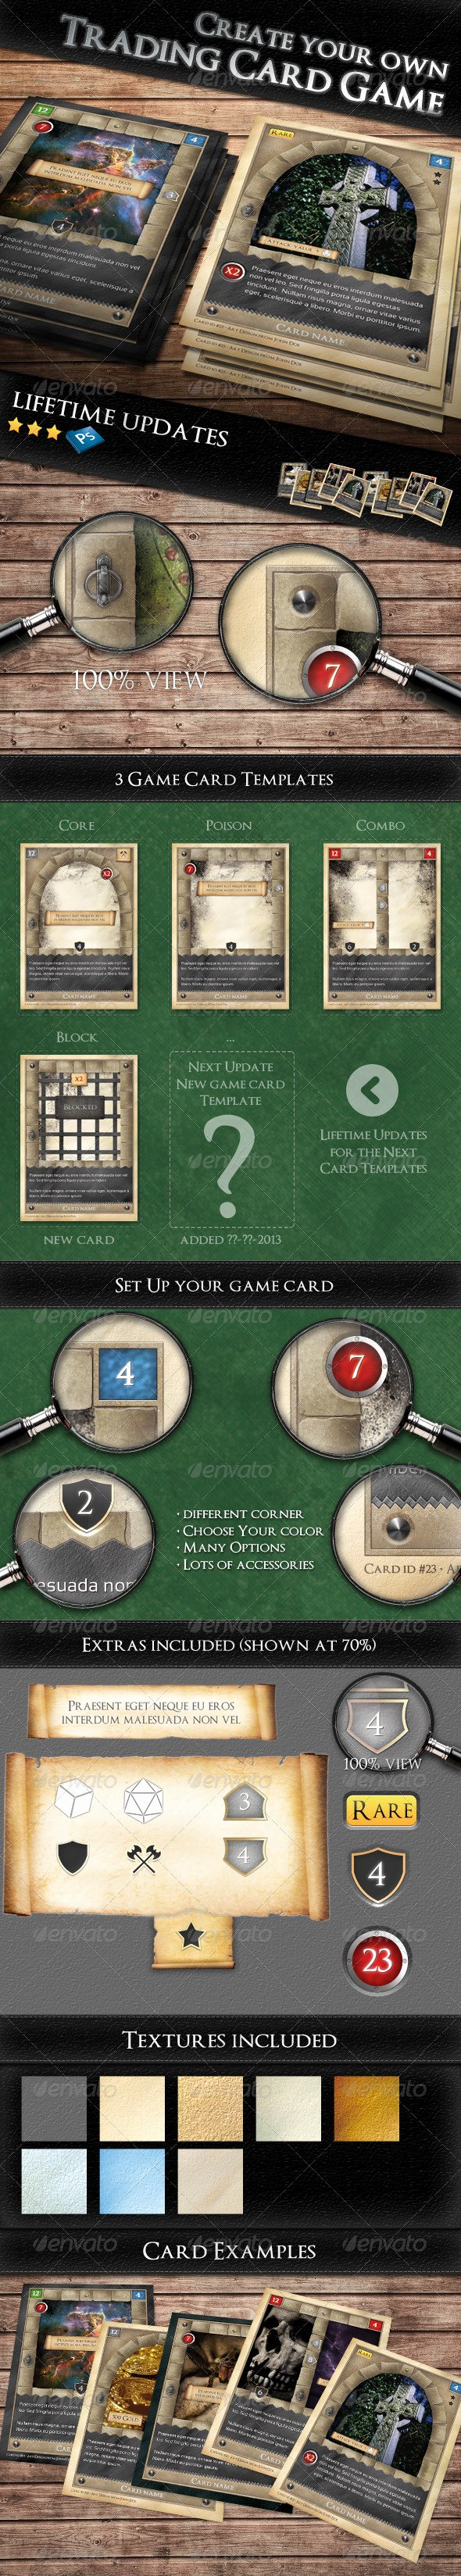 Trading Card Game Template Elegant Tcg Fantasy Trading Card Game Kit In Me Val